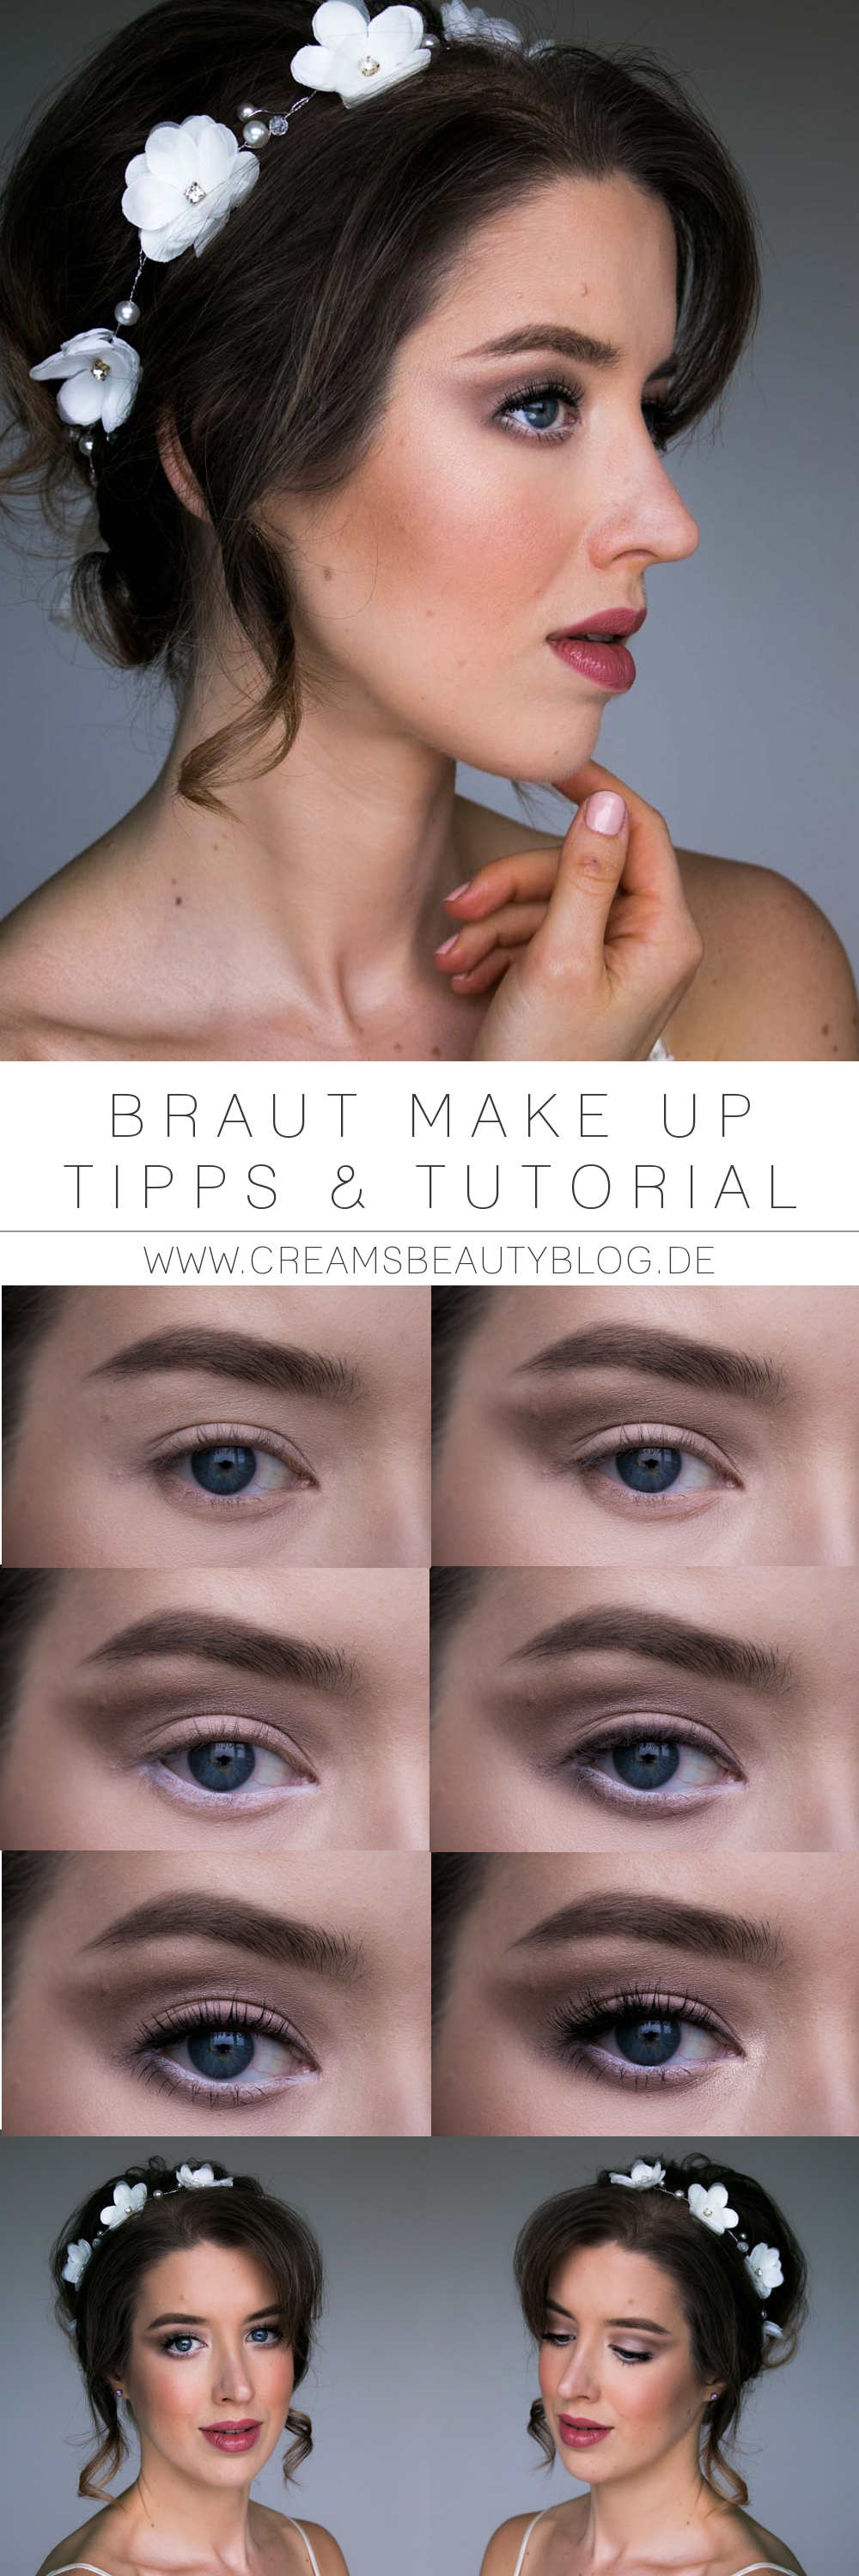 Cream's Beauty Blog Hochzeitsguide